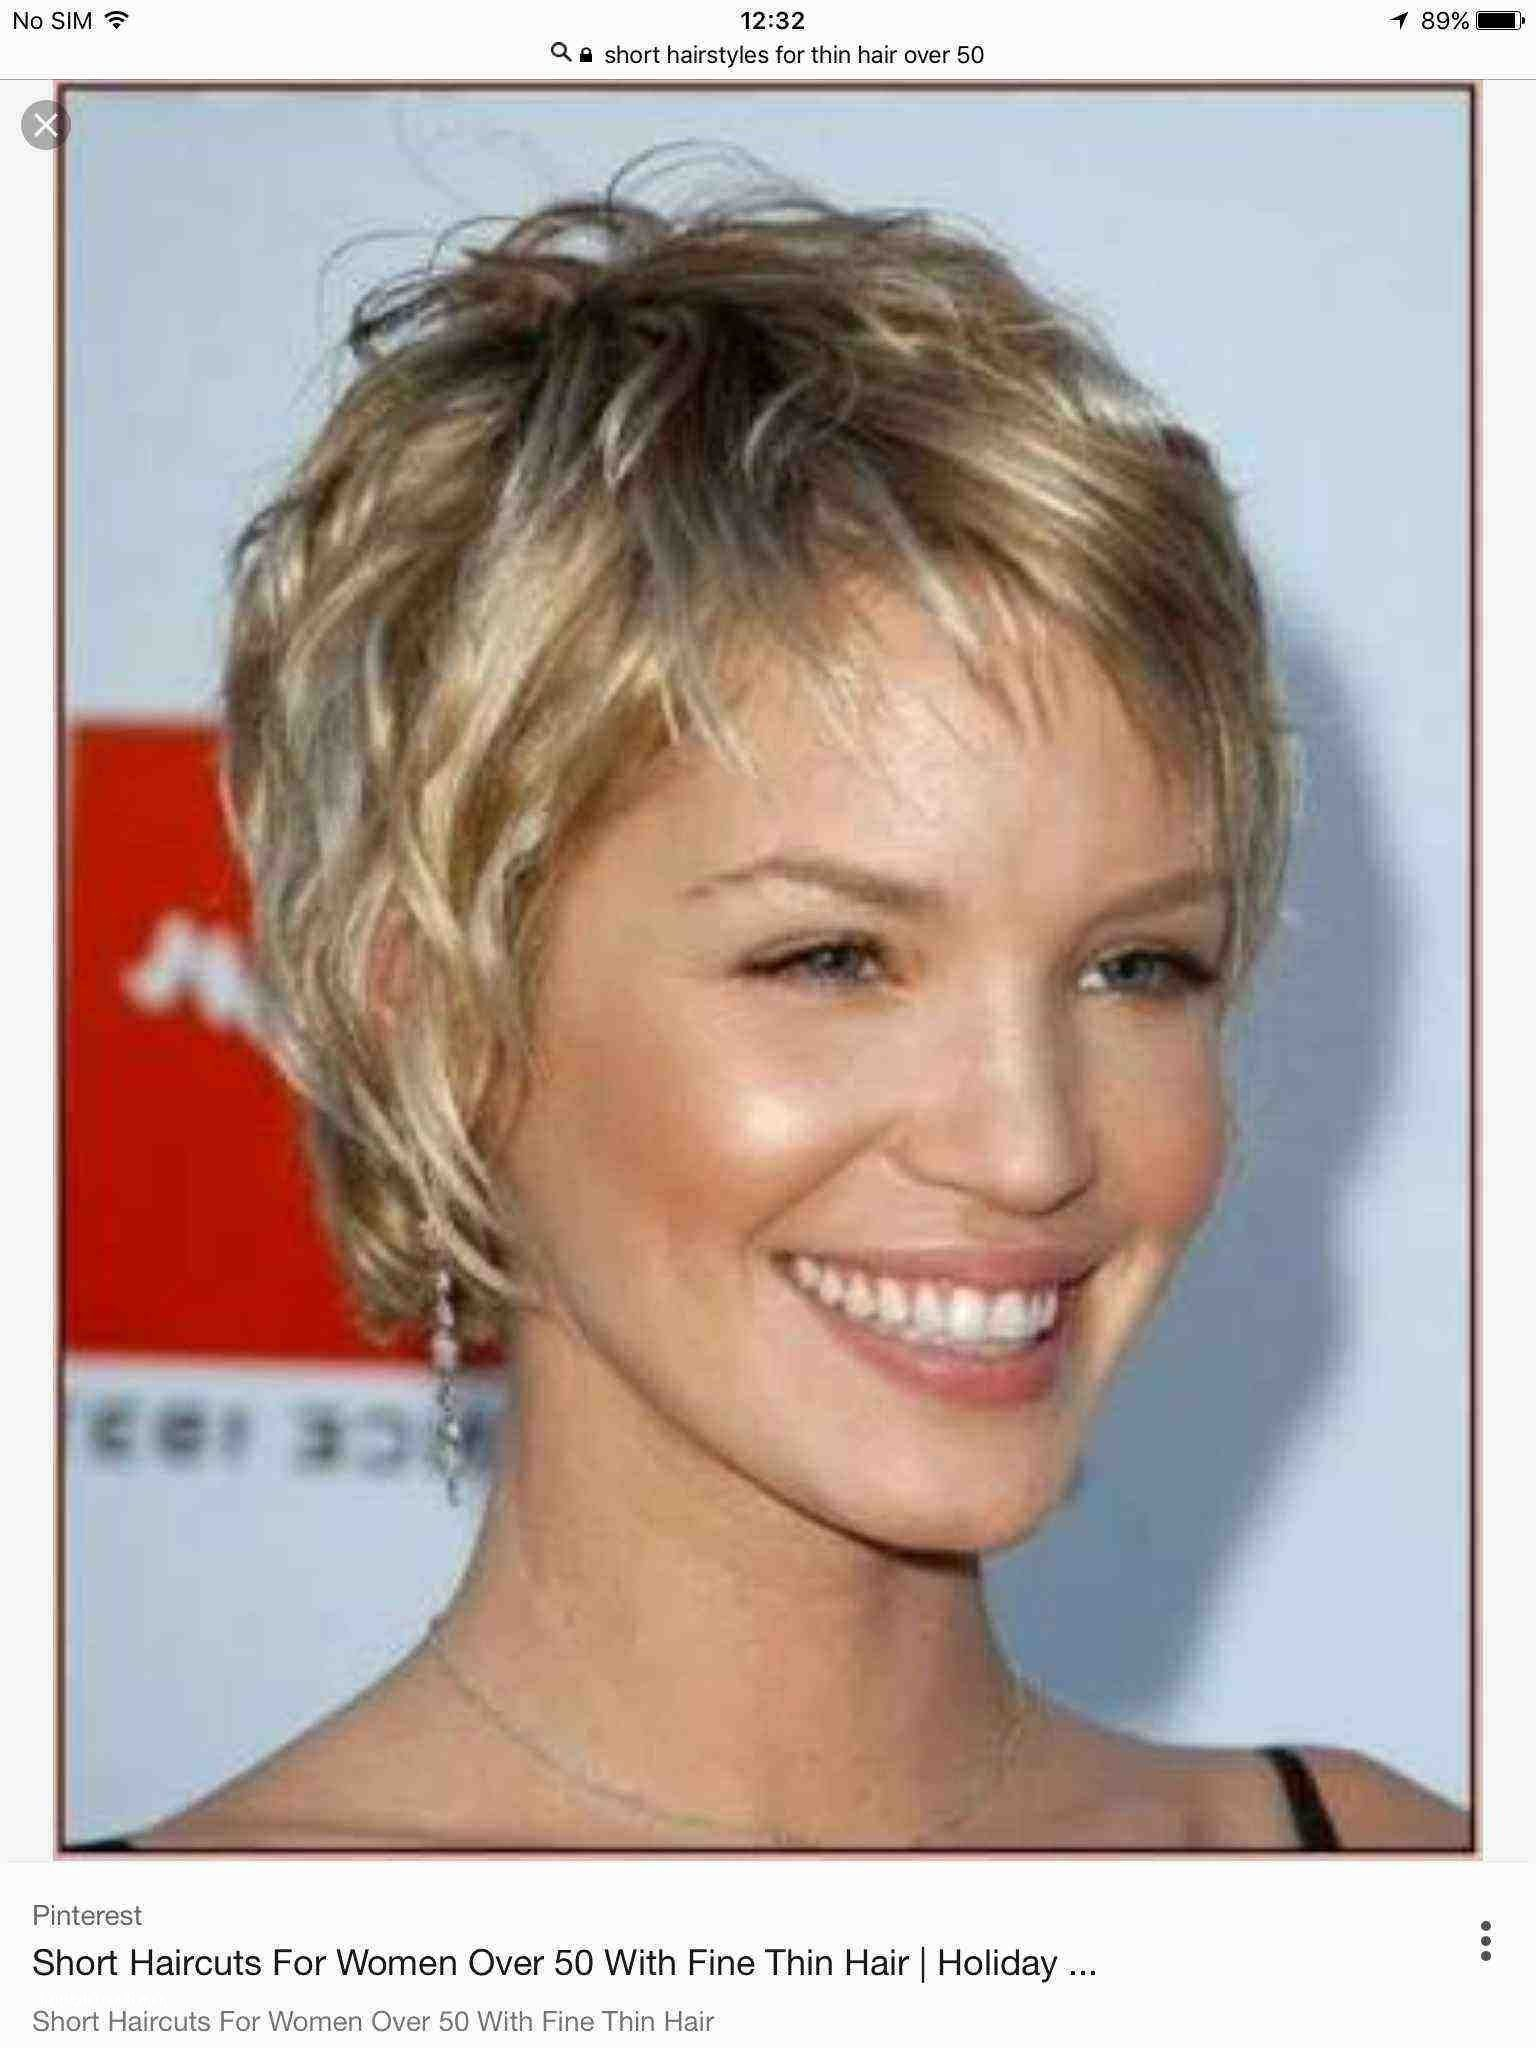 Curly Hairstyles For Women Over 50 Short Thin Hair Short Hairstyles Fine Hairstyles For Thin Hair